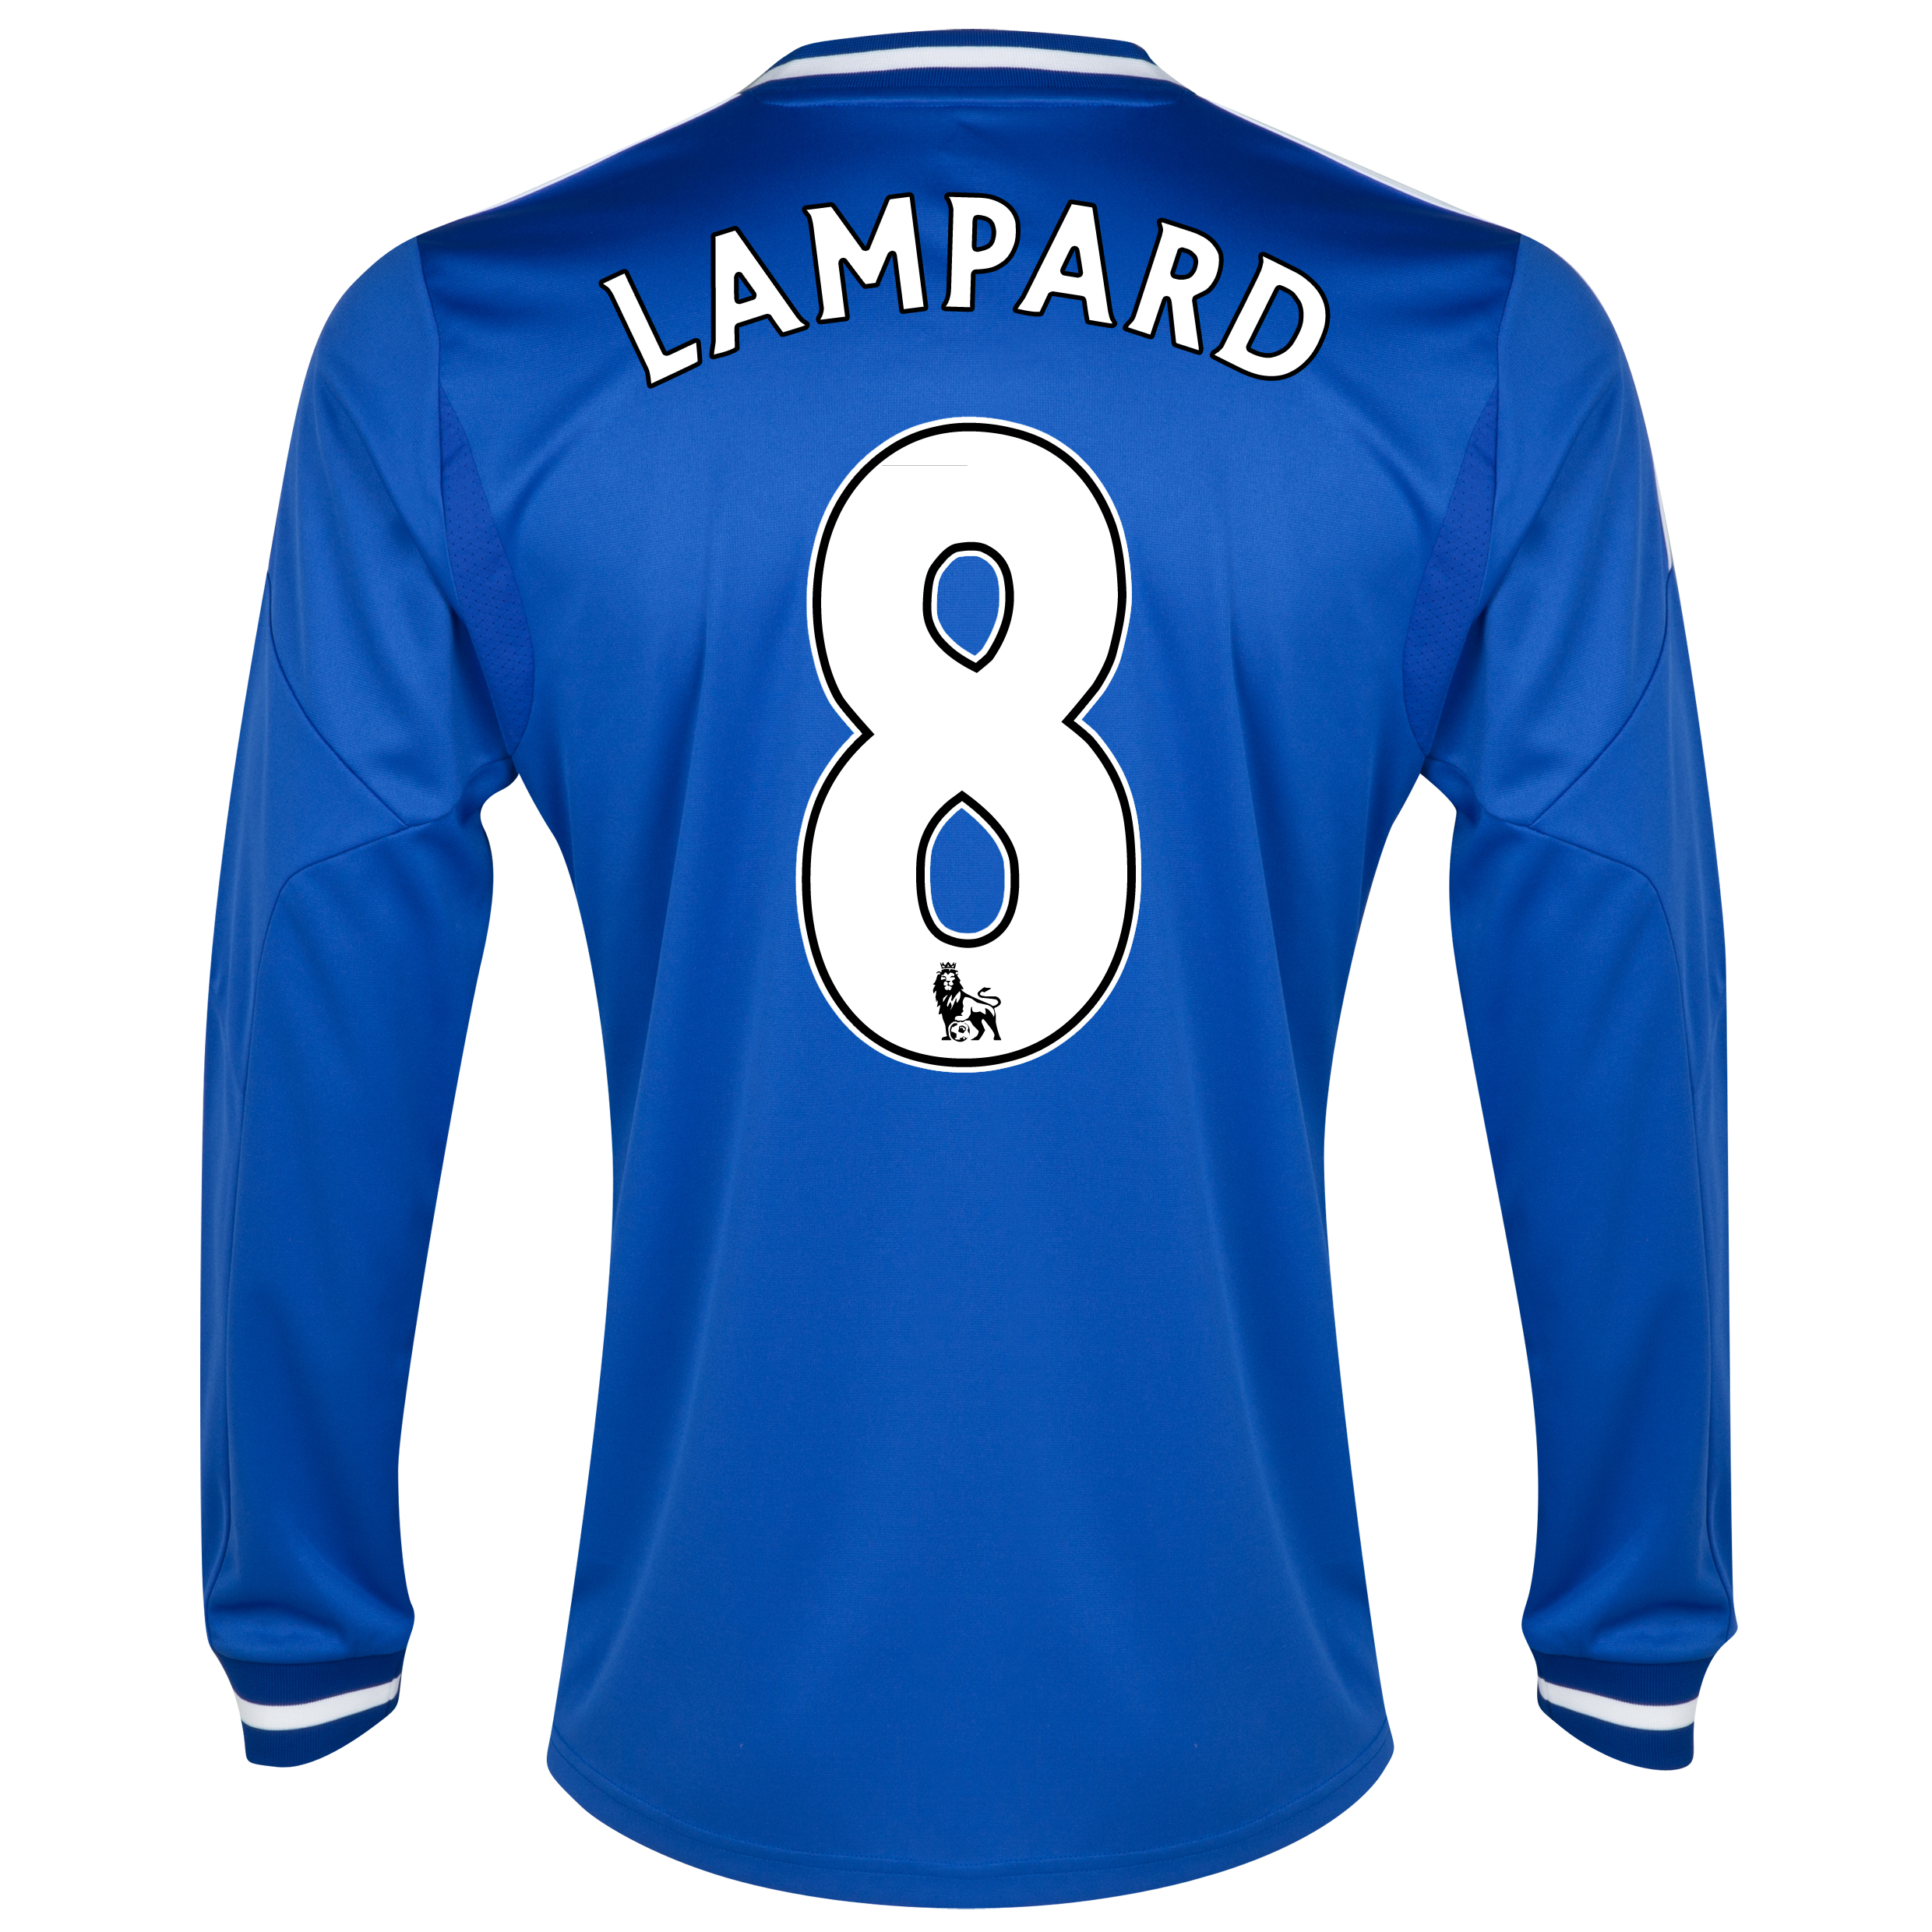 Chelsea Home Shirt 2013/14 - Long Sleeve - Kids with Lampard 8 printing